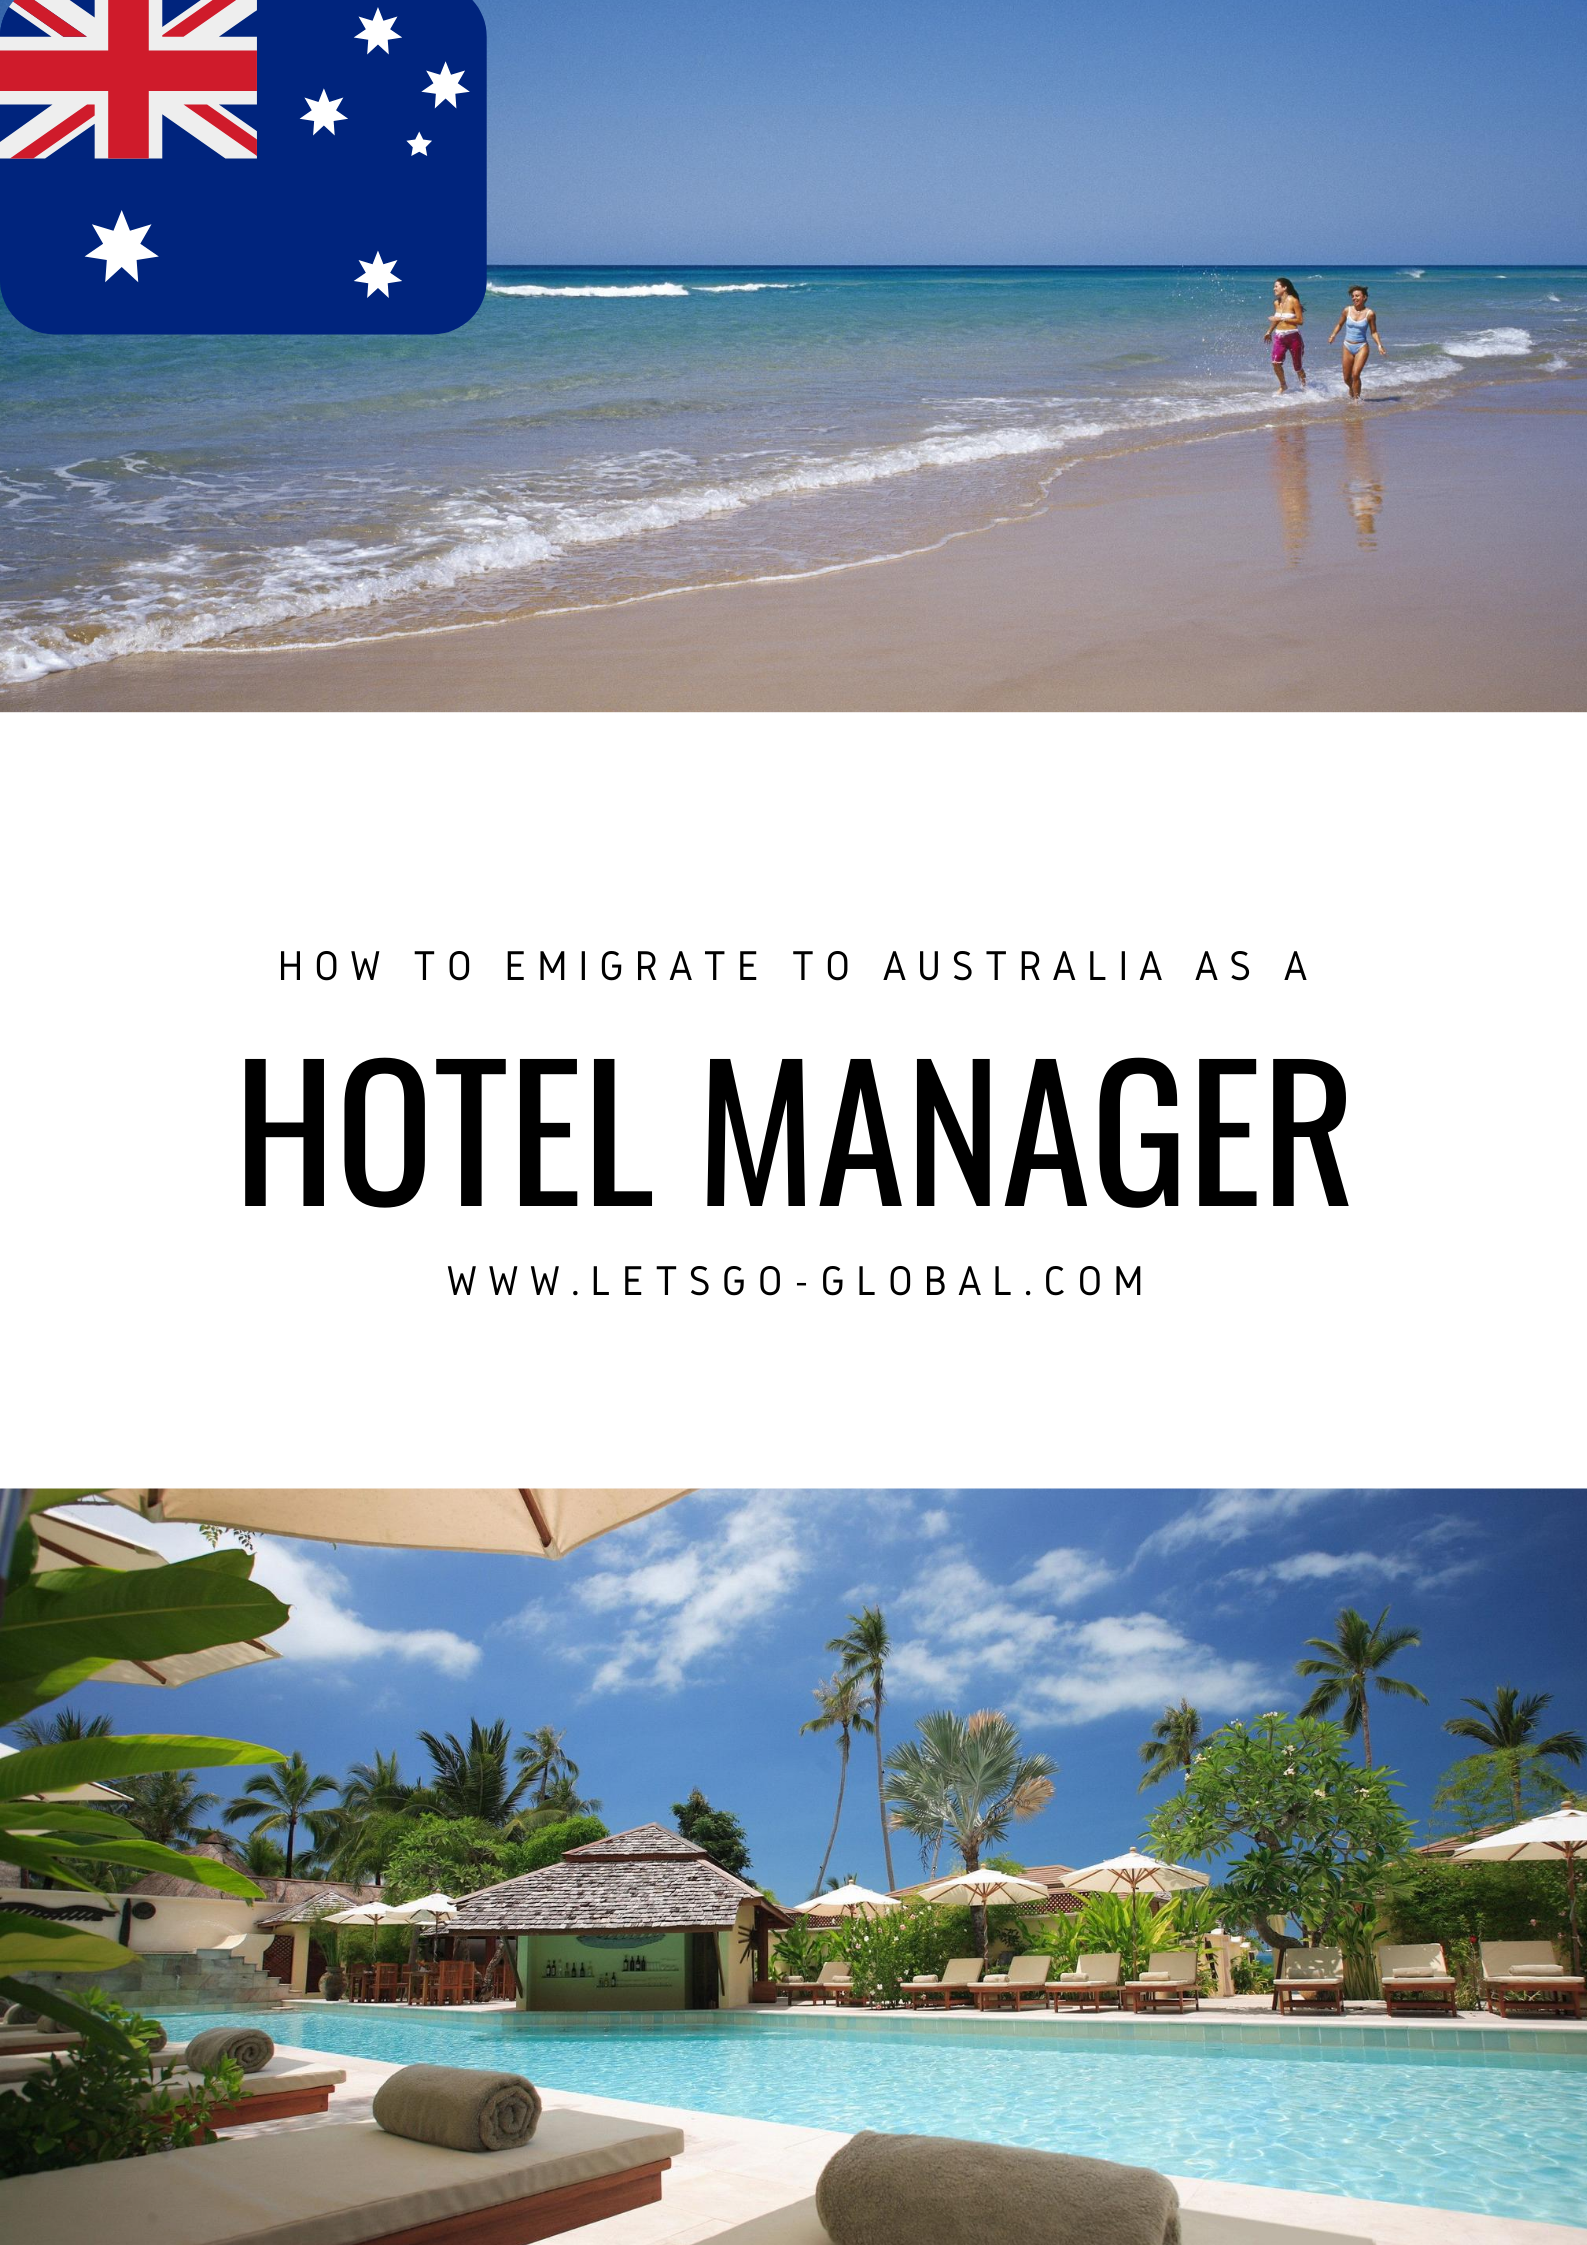 Migrate to Australia as a Hotel Manager